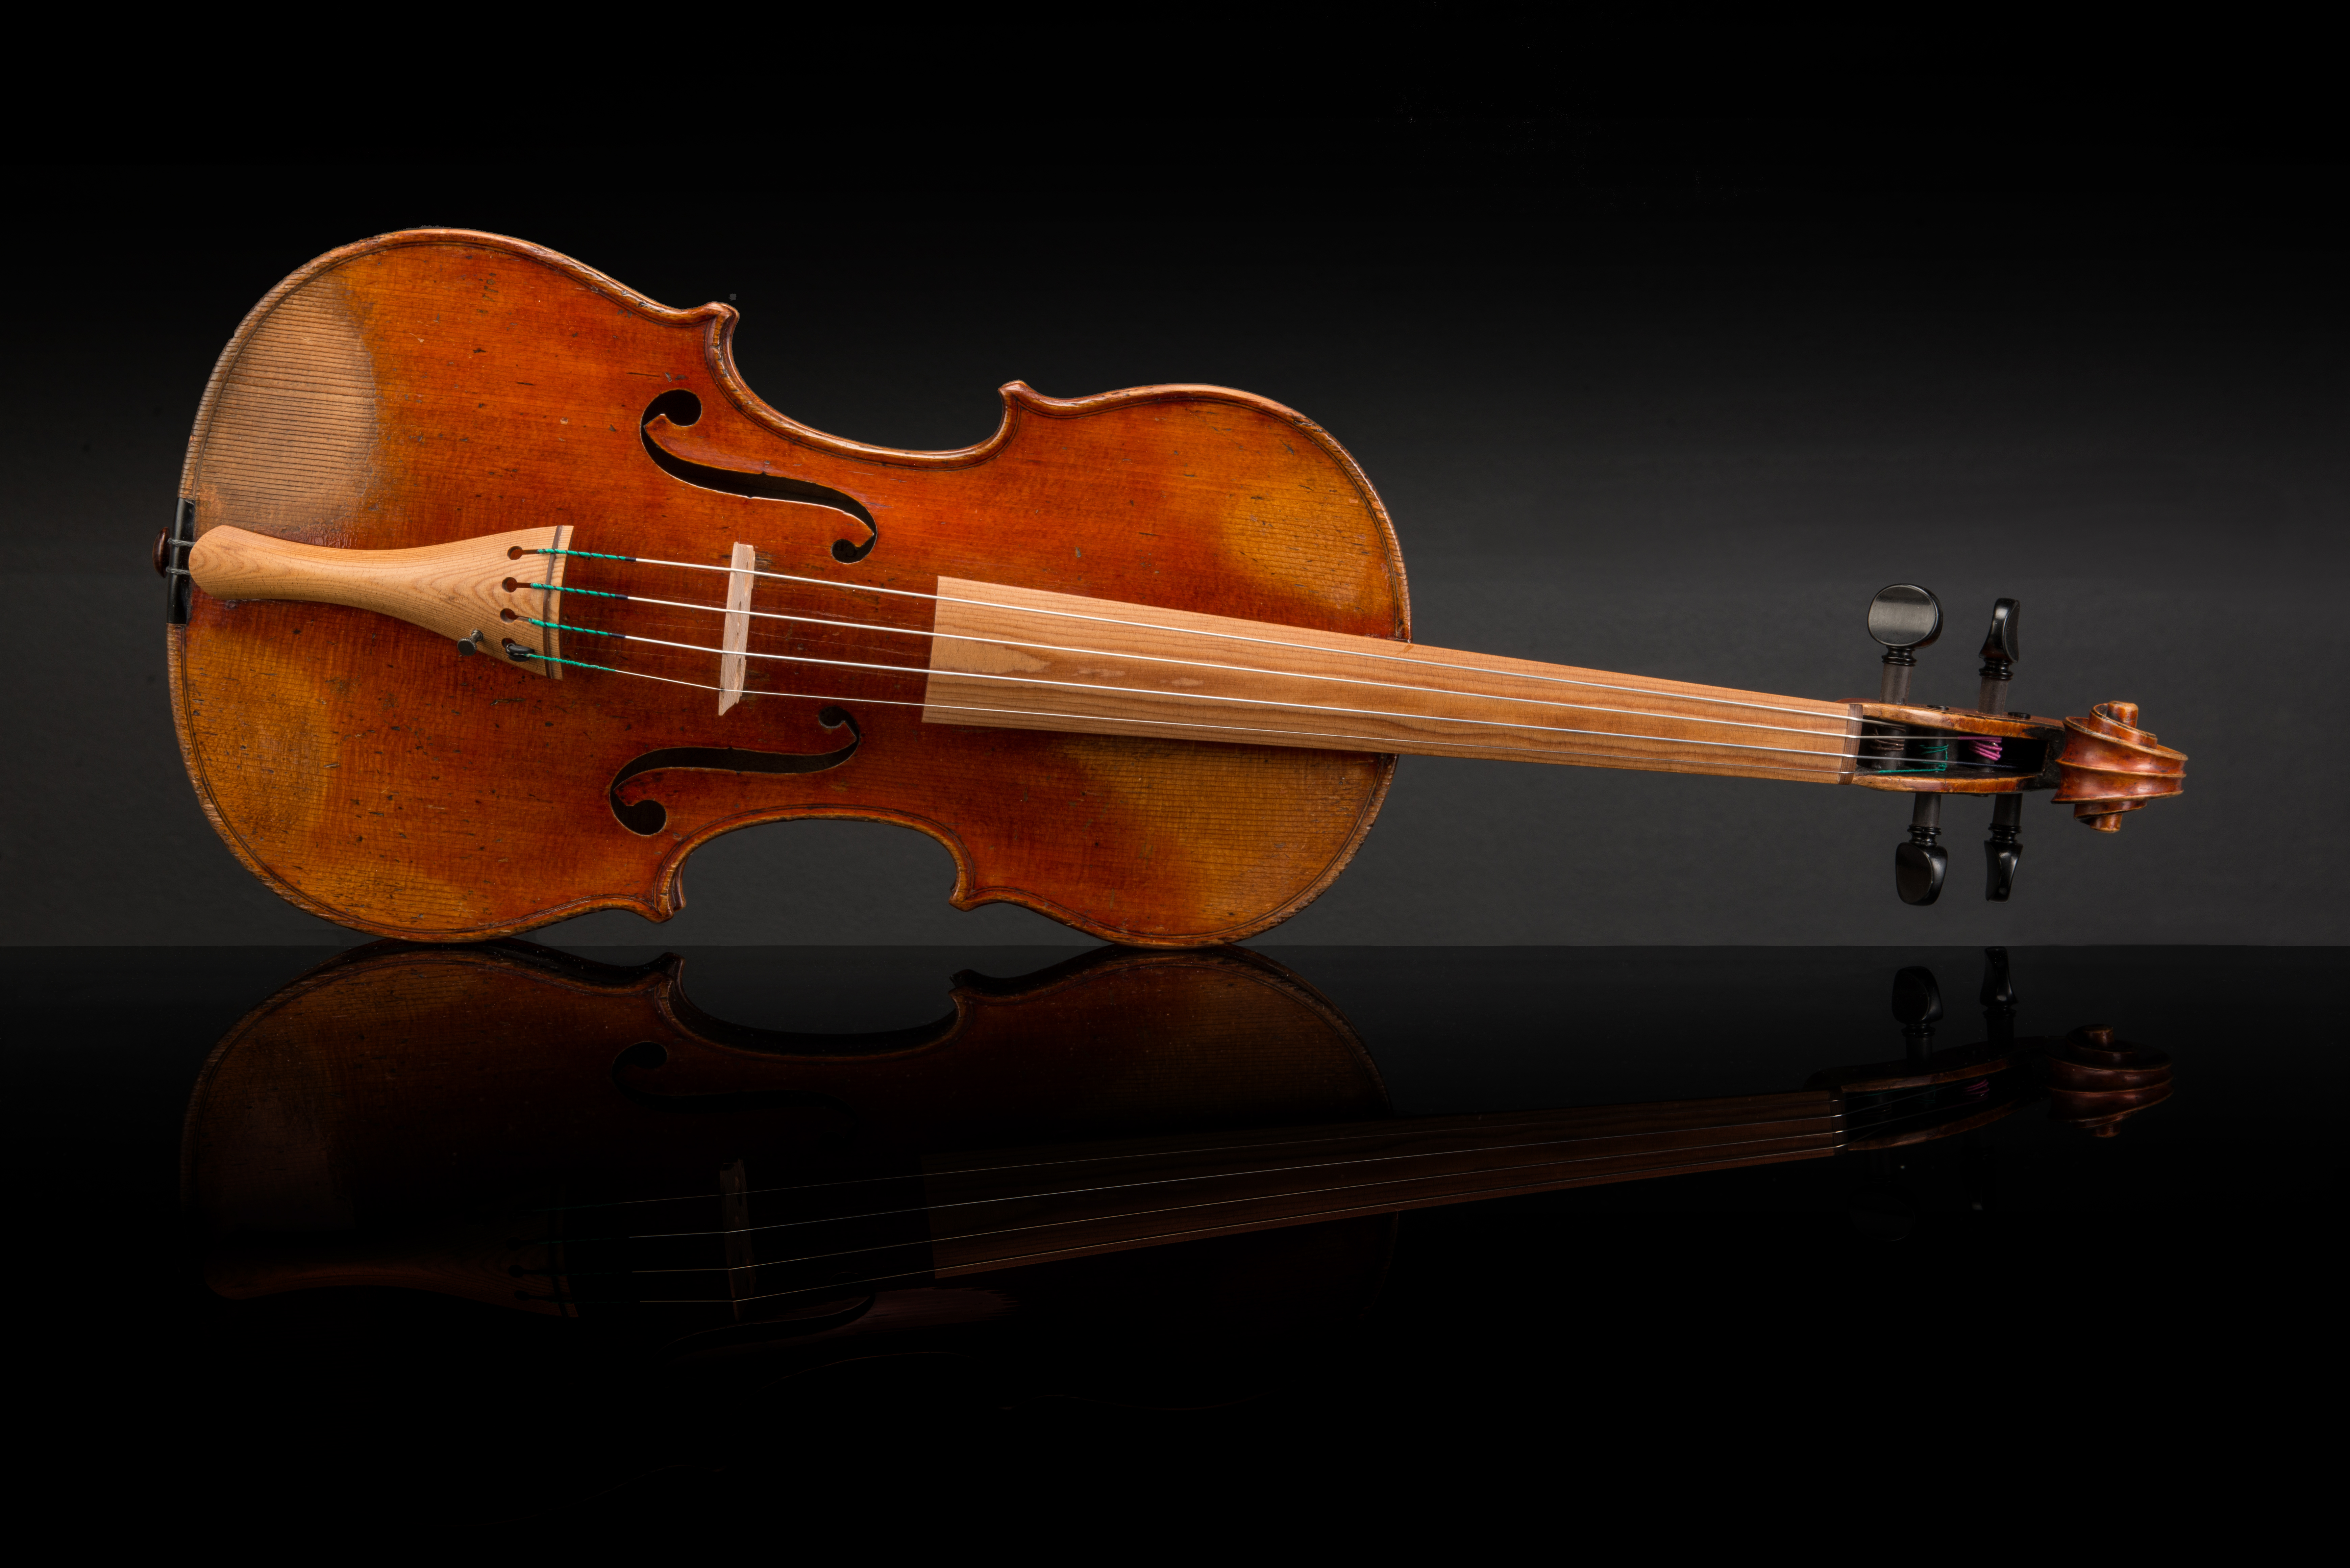 Charles Gaillard 1863 with a fingerboard and tailpiece from Sonowood spruce made by Wilhelm Geigenbau. Photo: The Strad Magazine